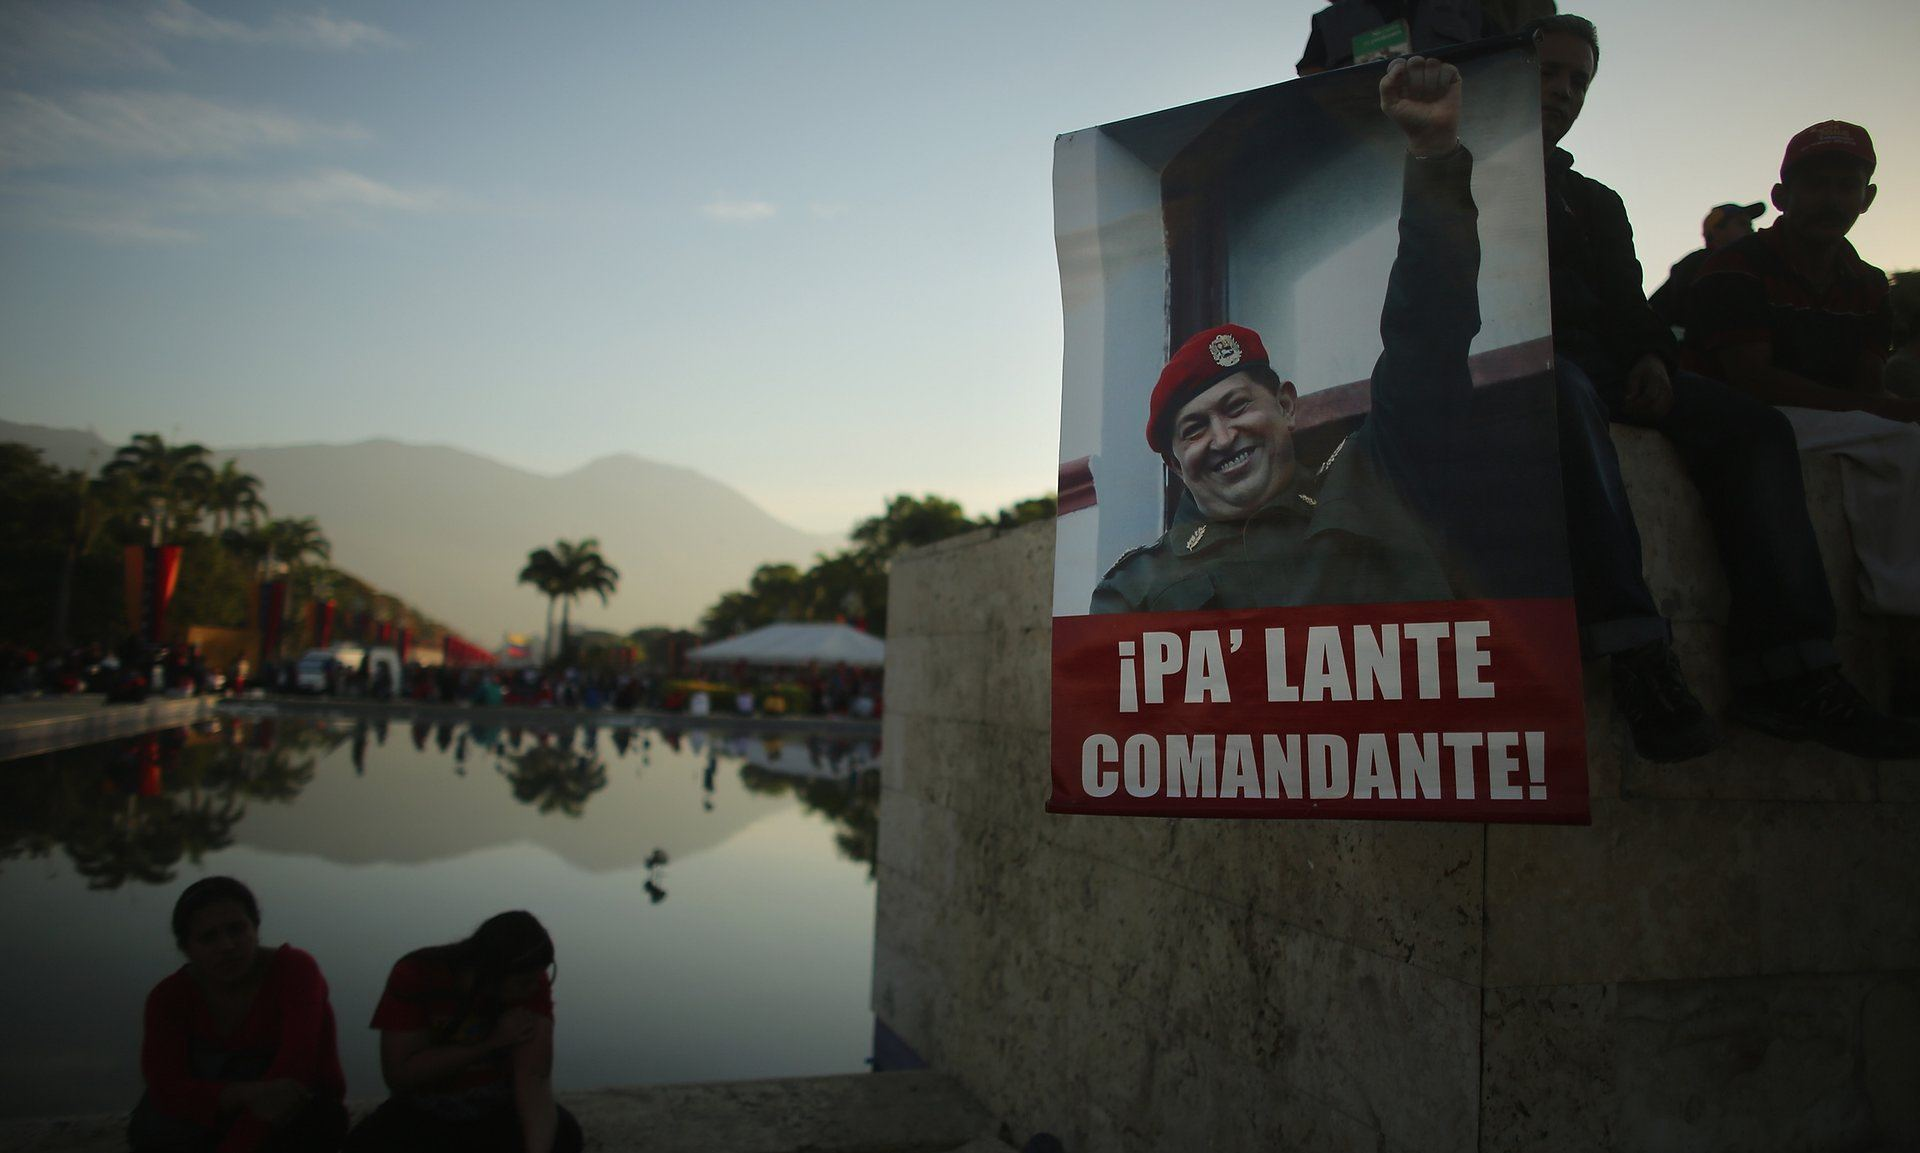 People gathered before the start of Hugo Chávez's funeral in Caracas, Venezuela. Photograph: Mario Tama/Getty Images